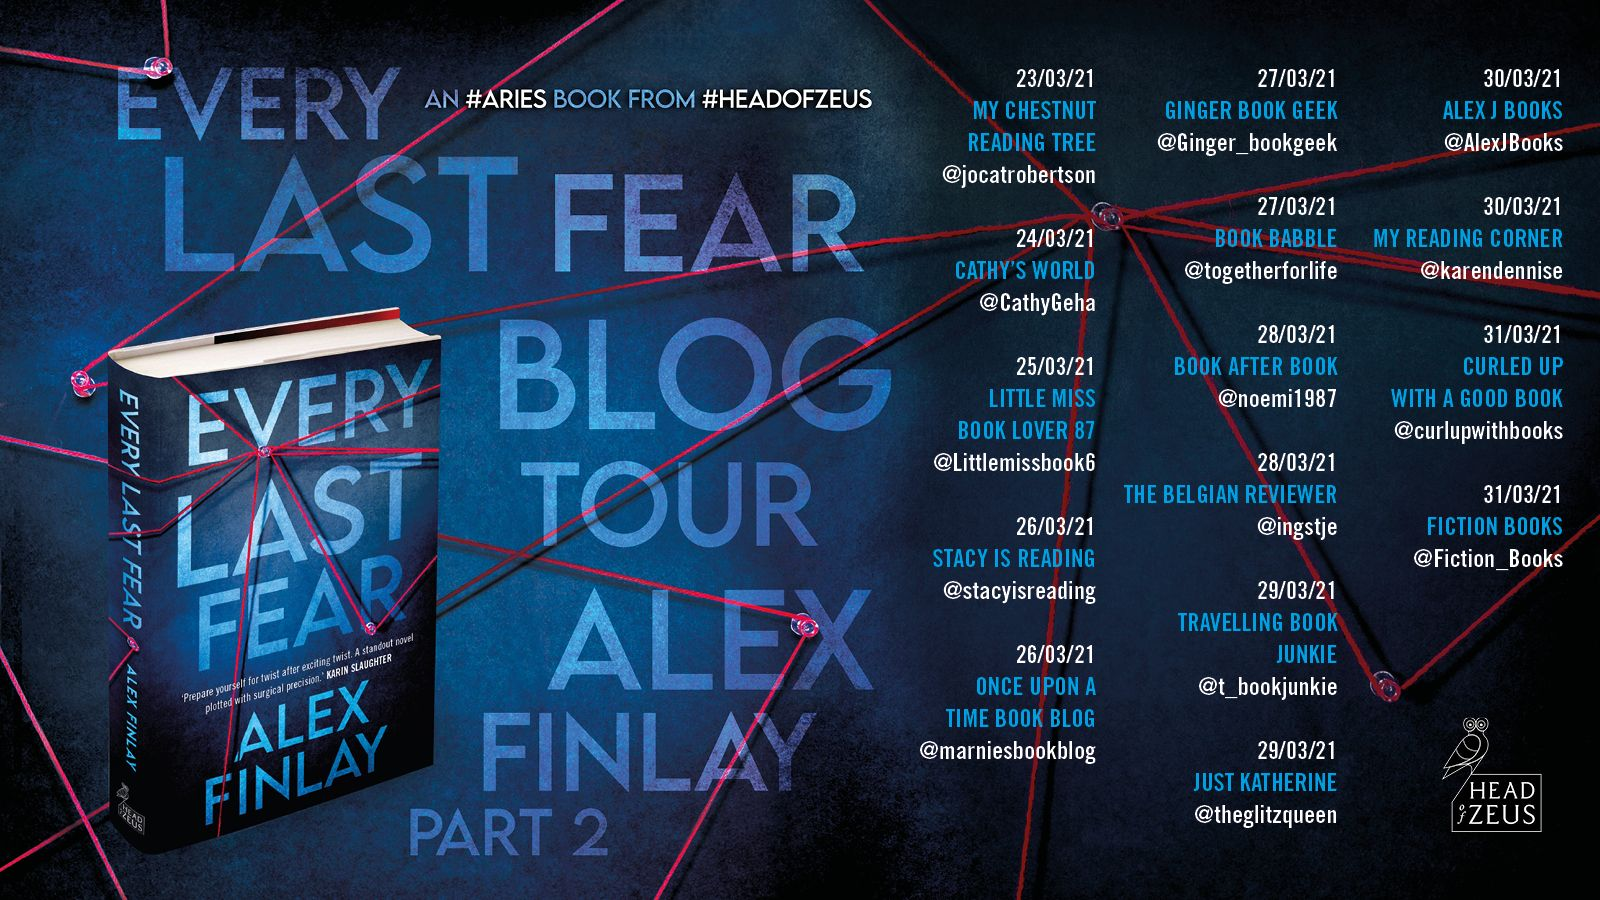 Image of part 2 of the Blog Tour Banner for the book 'Every Last Fear' by the author Alex Finlay